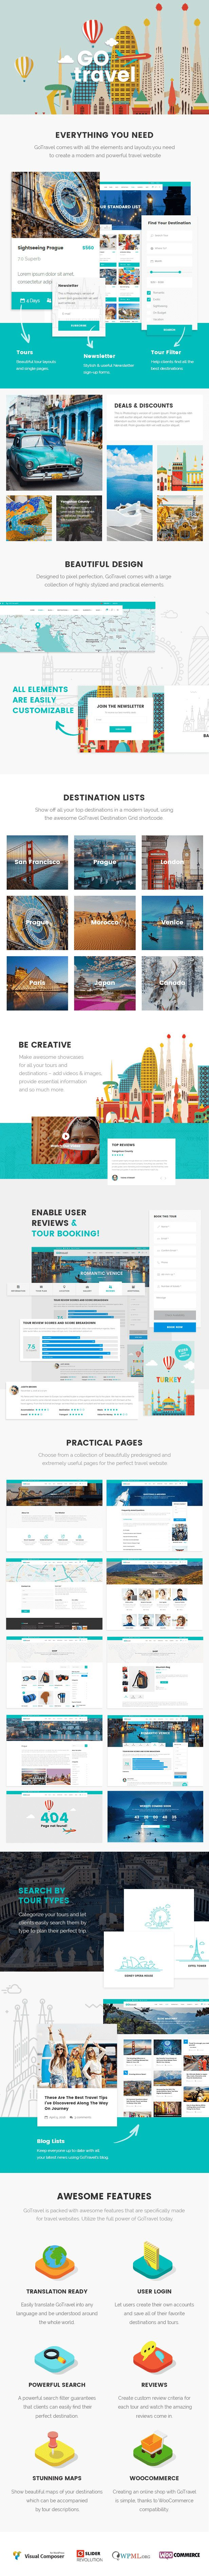 GoTravel - A Travel Agency & Tourism Theme #responsive #search #tours • Download ➝ https://themeforest.net/item/gotravel-a-travel-agency-tourism-theme/18939921?ref=pxcr